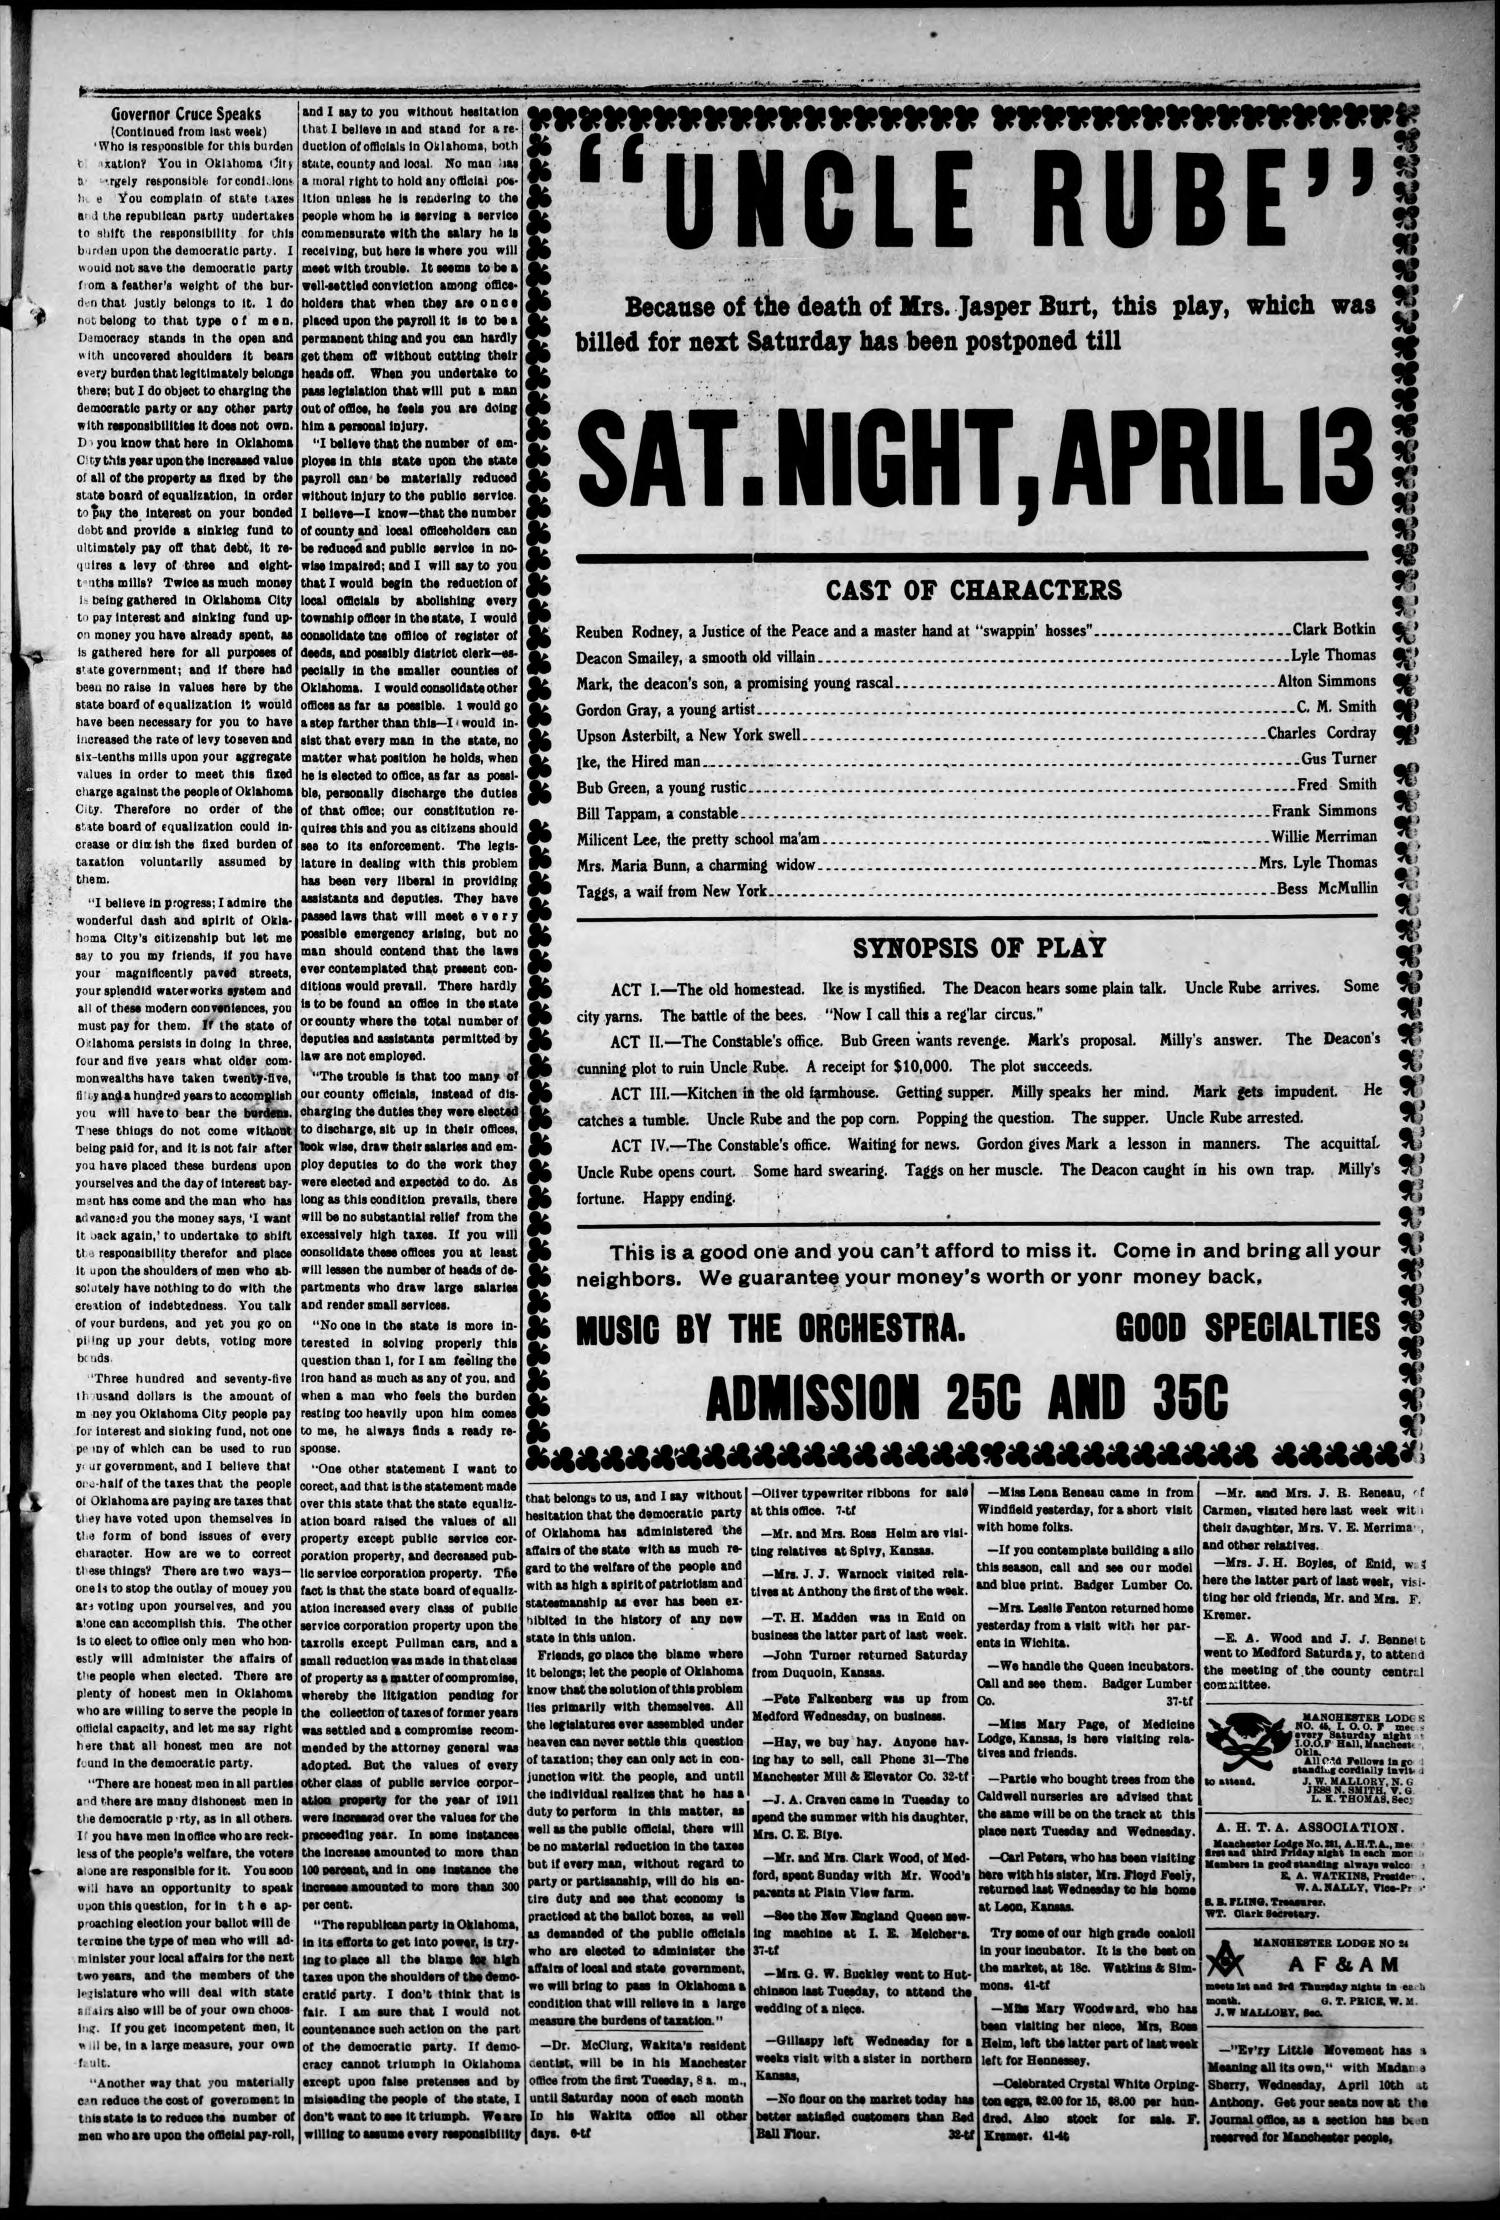 The Manchester Journal. (Manchester, Okla.), Vol. 19, No. 44, Ed. 1 Wednesday, April 5, 1911                                                                                                      [Sequence #]: 3 of 4